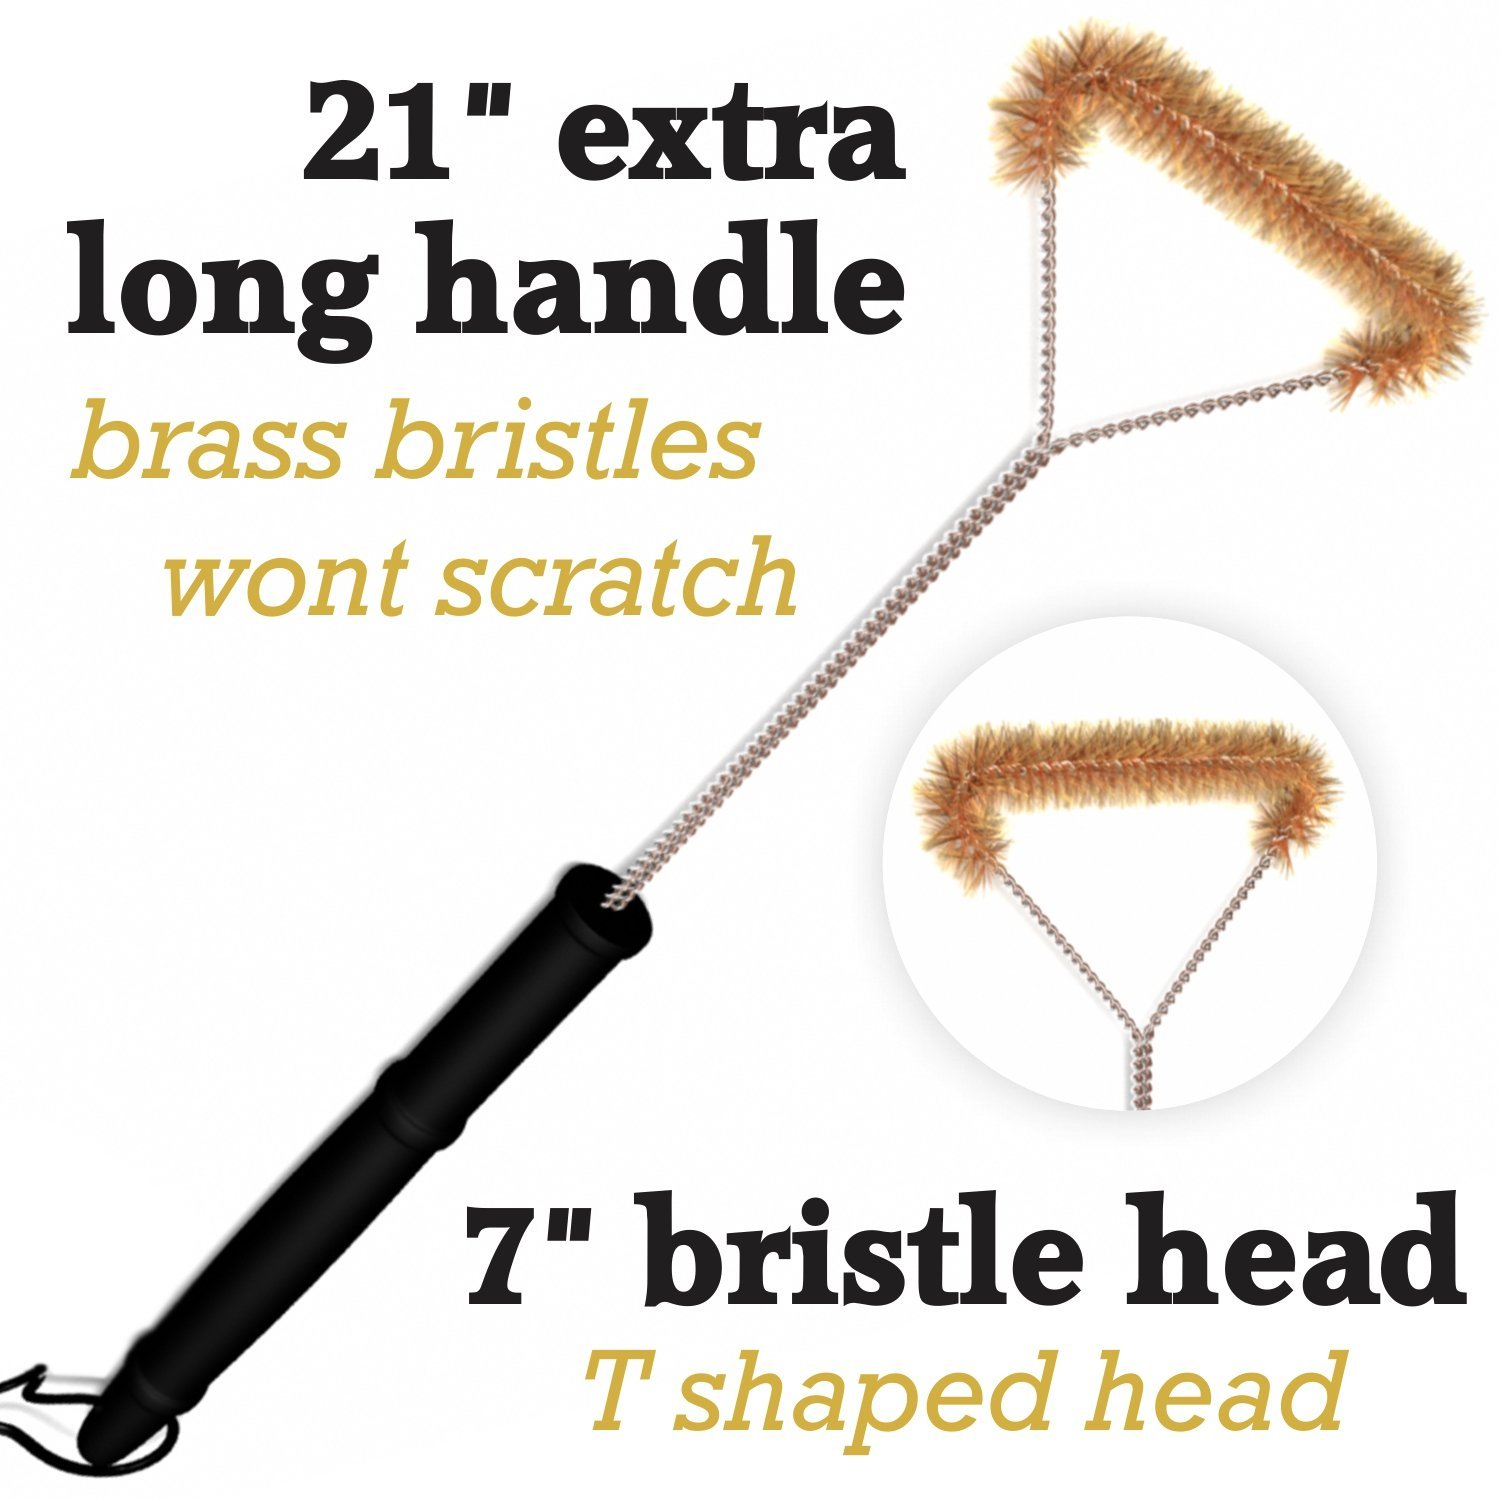 Grill Brush Extra Long 21u201d Removes Grease Grime And Debris From Top Bottom  Corners And Sides Brass Bristles Wonu0027t Scratch Or Damage Porcelain  Grids !50%Sale ...